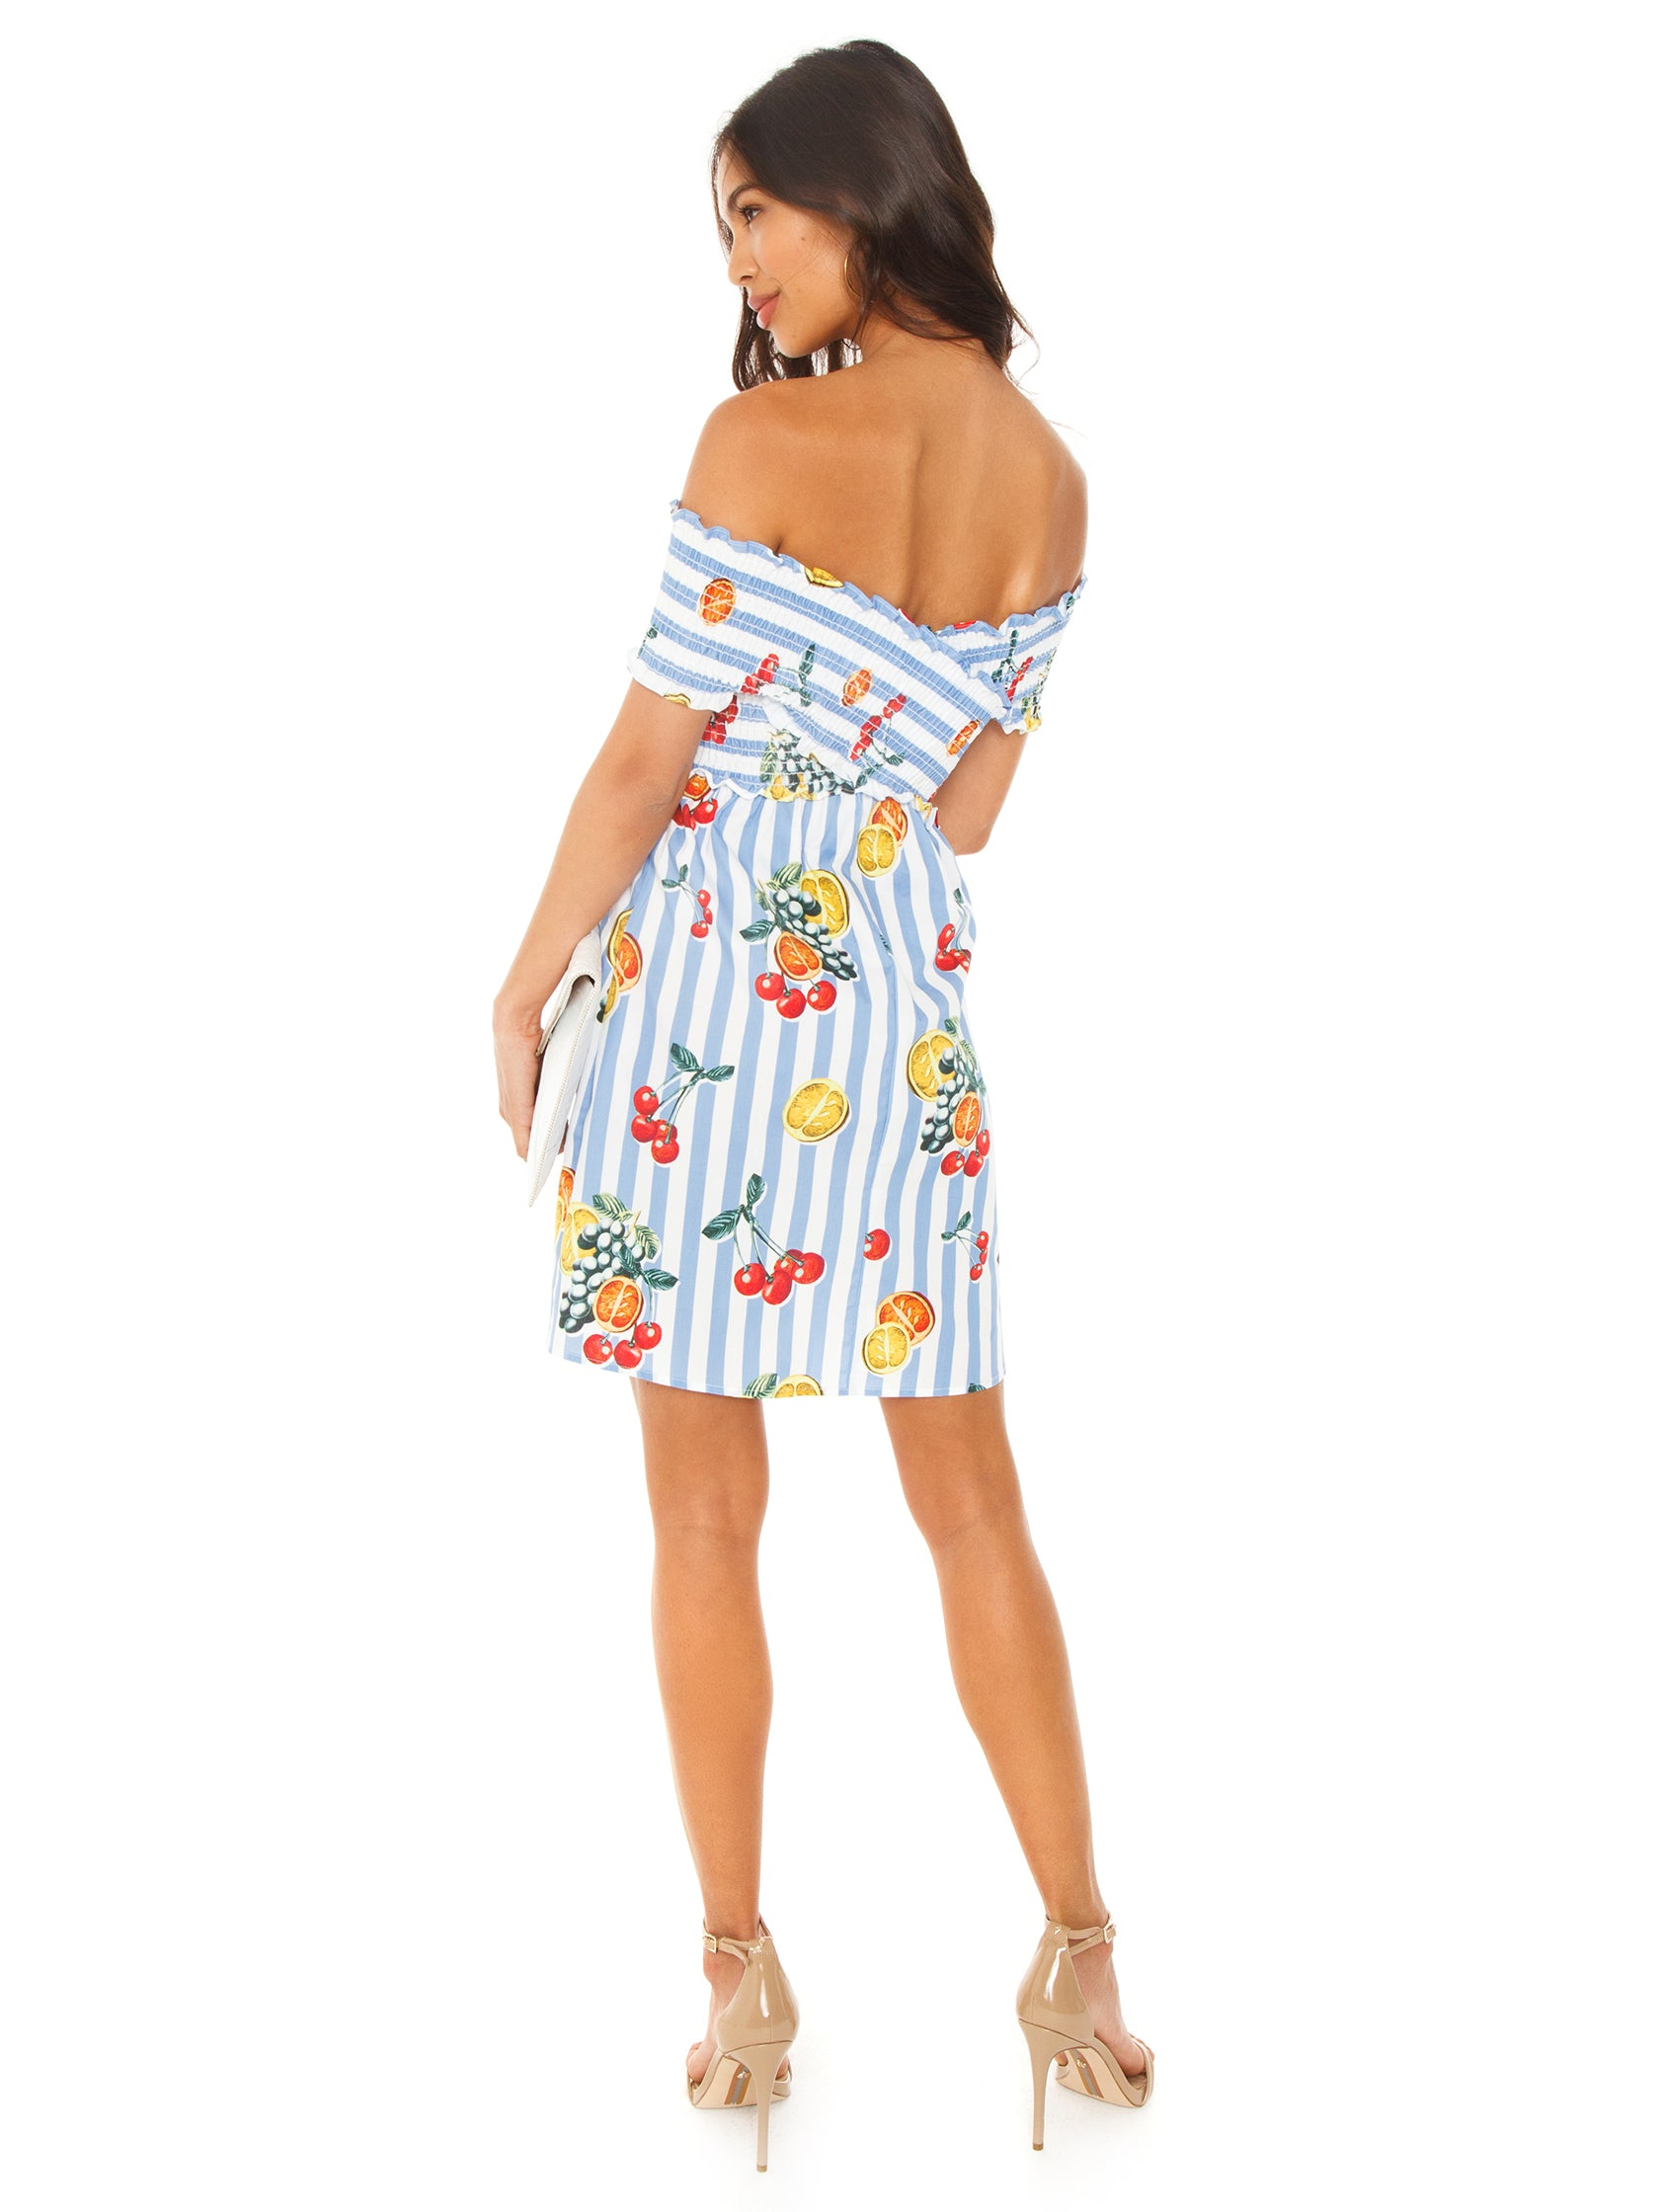 Women wearing a dress rental from Show Me Your Mumu called Mandy Smocked Dress